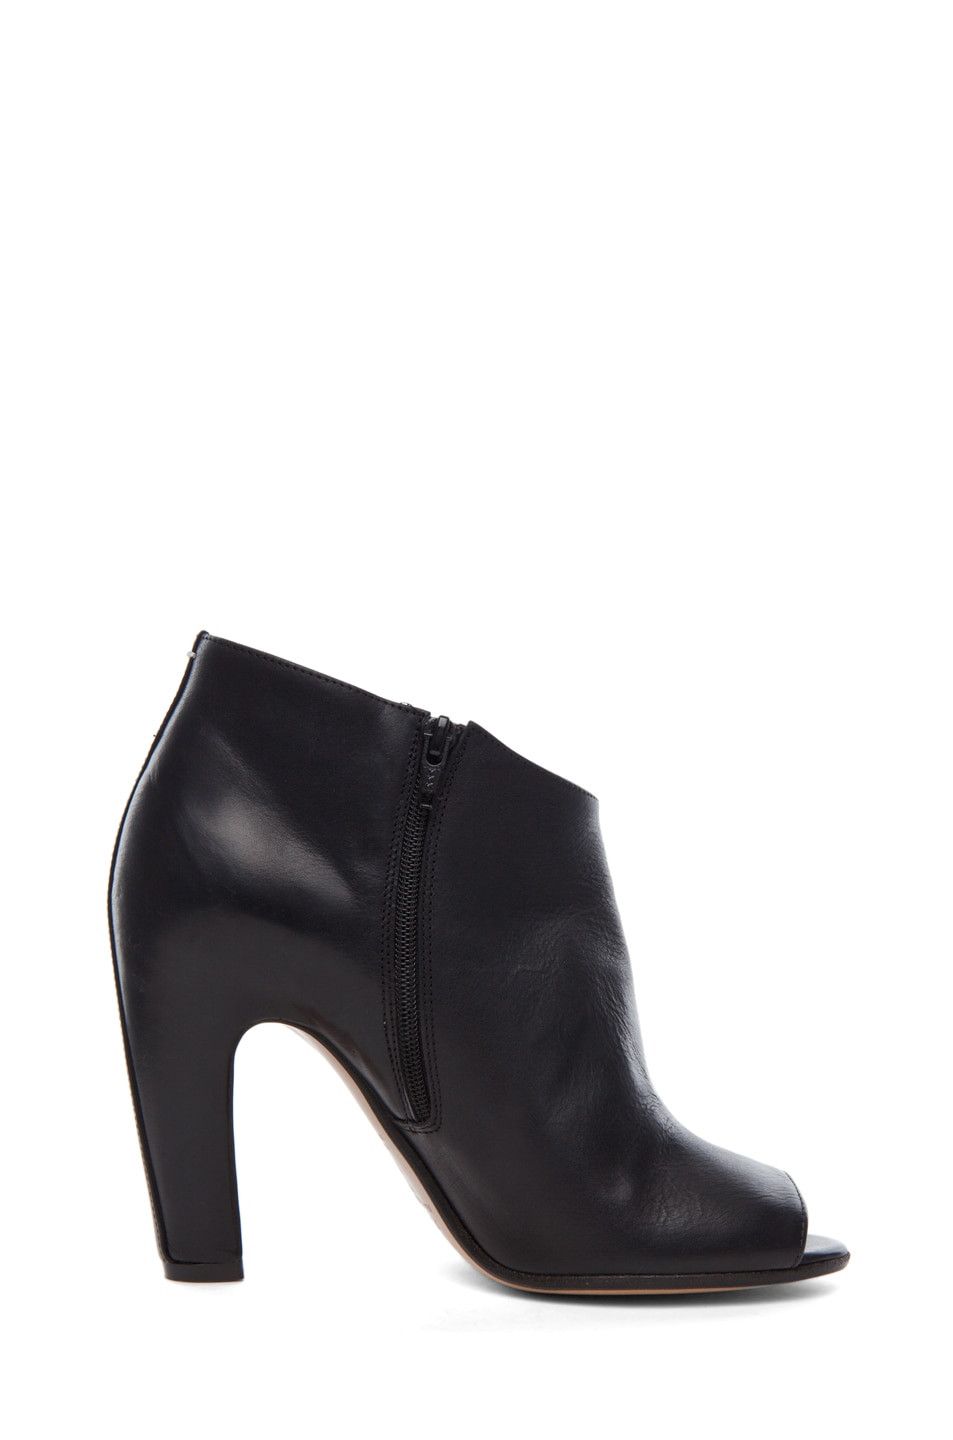 Image 5 of Maison Margiela Leather Open Toe Booties in Black